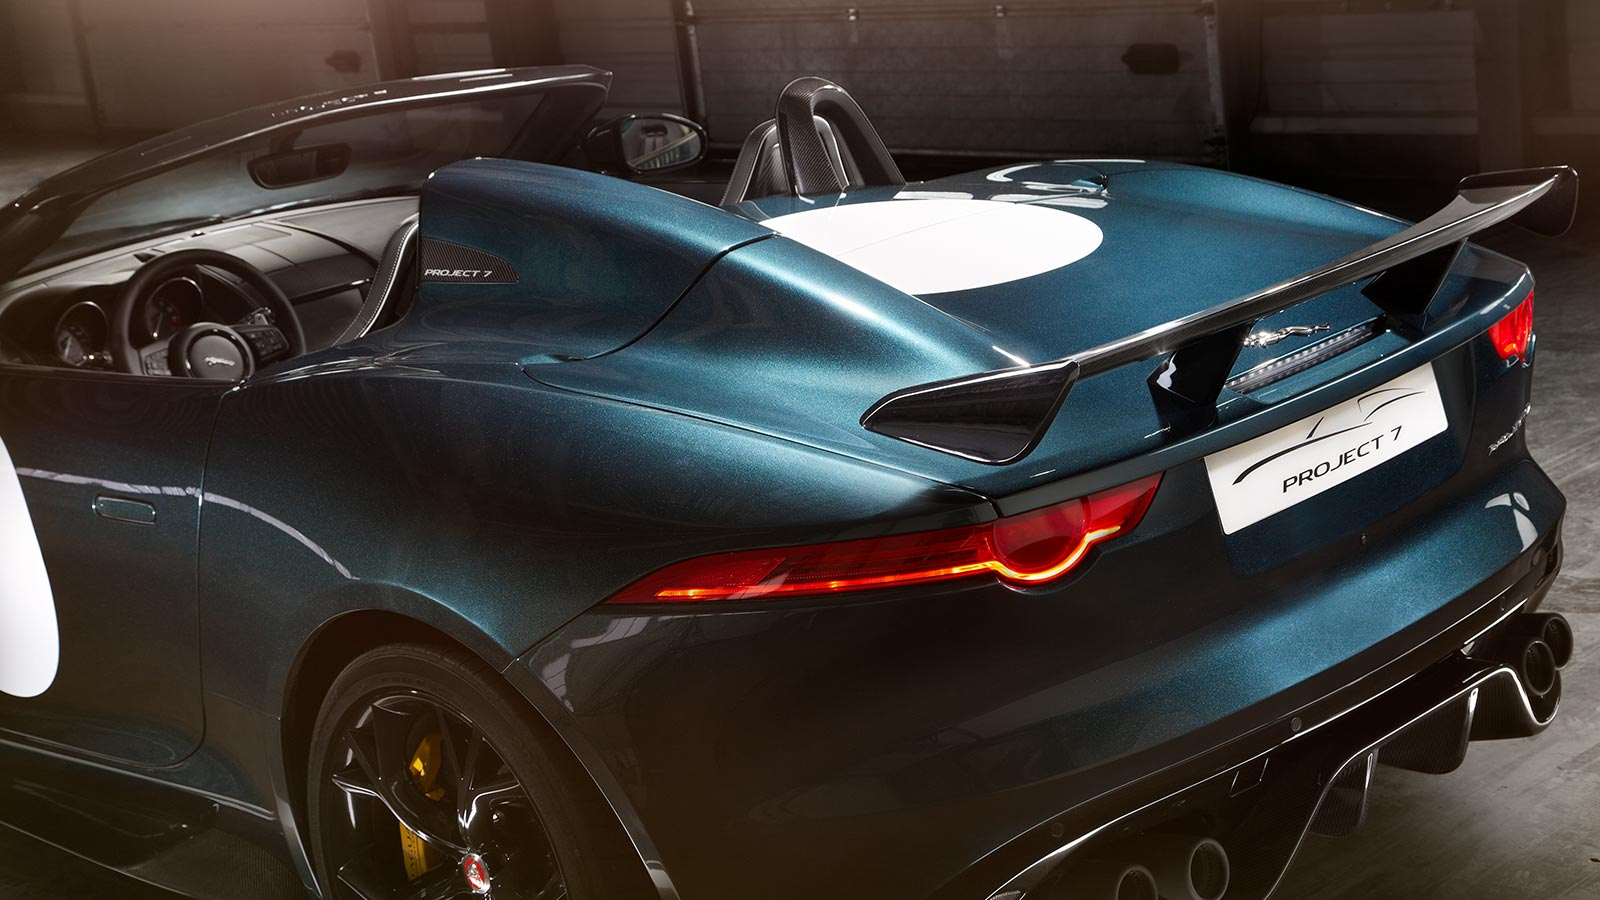 Jaguar F-TYPE Project 7 in dark green rear nameplate.